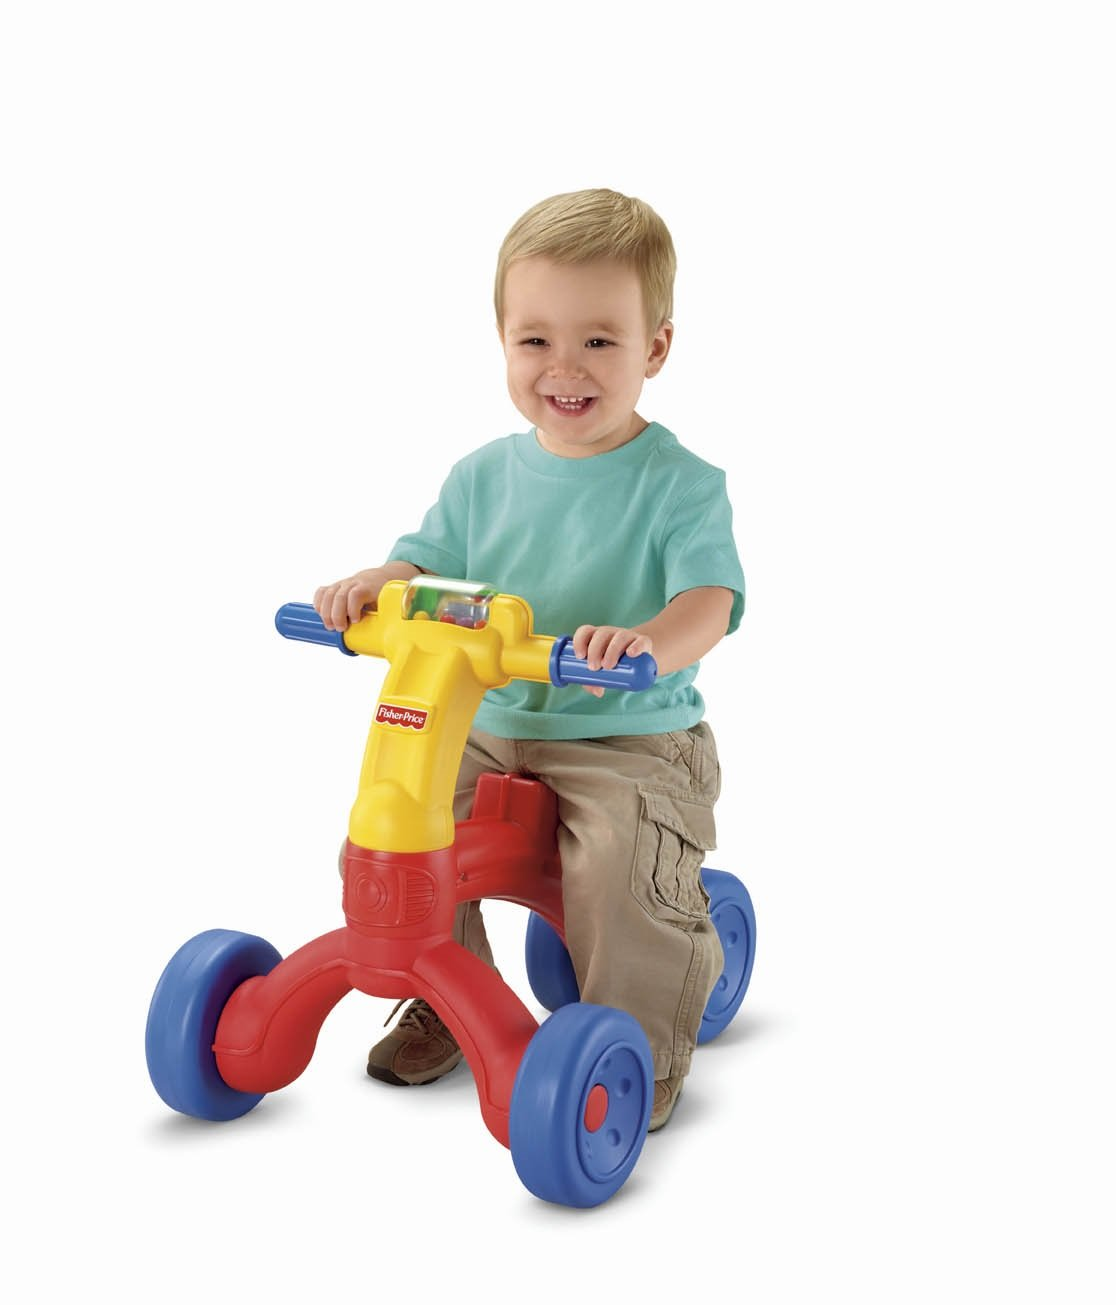 Amazon.com: Fisher-Price Bright Beginnings Ready Steady Trike: Toys ...